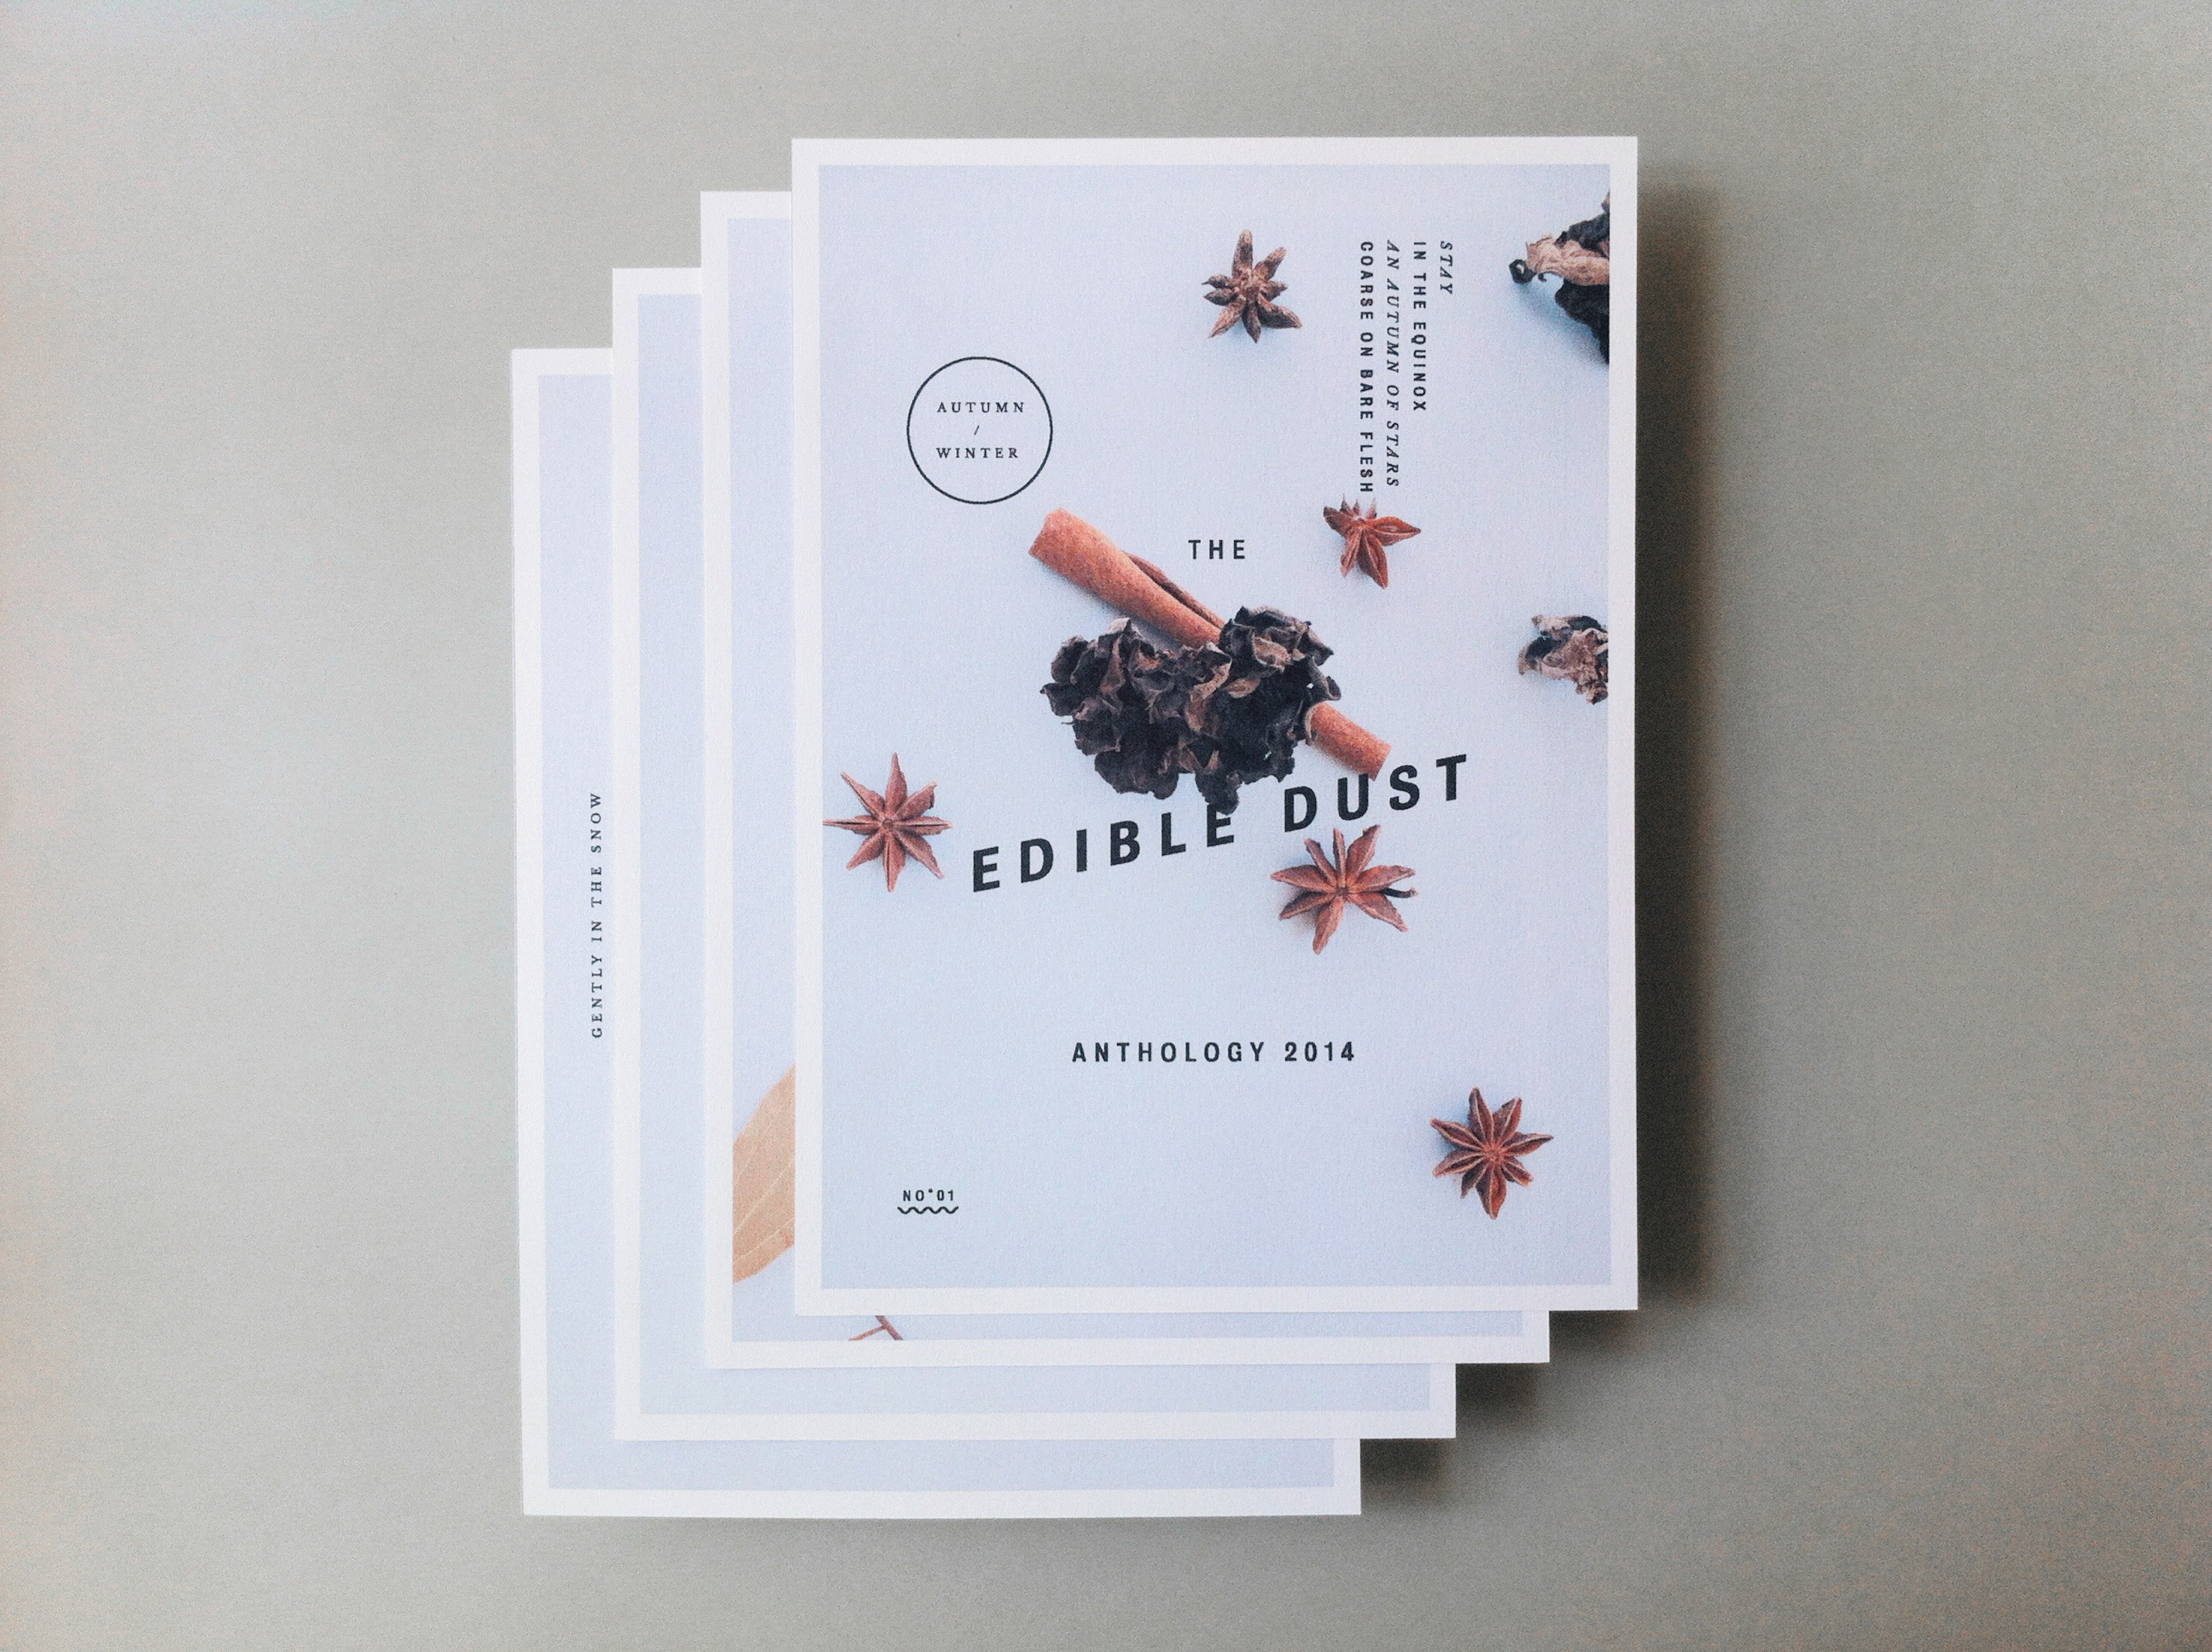 The Edible Dust Anthology